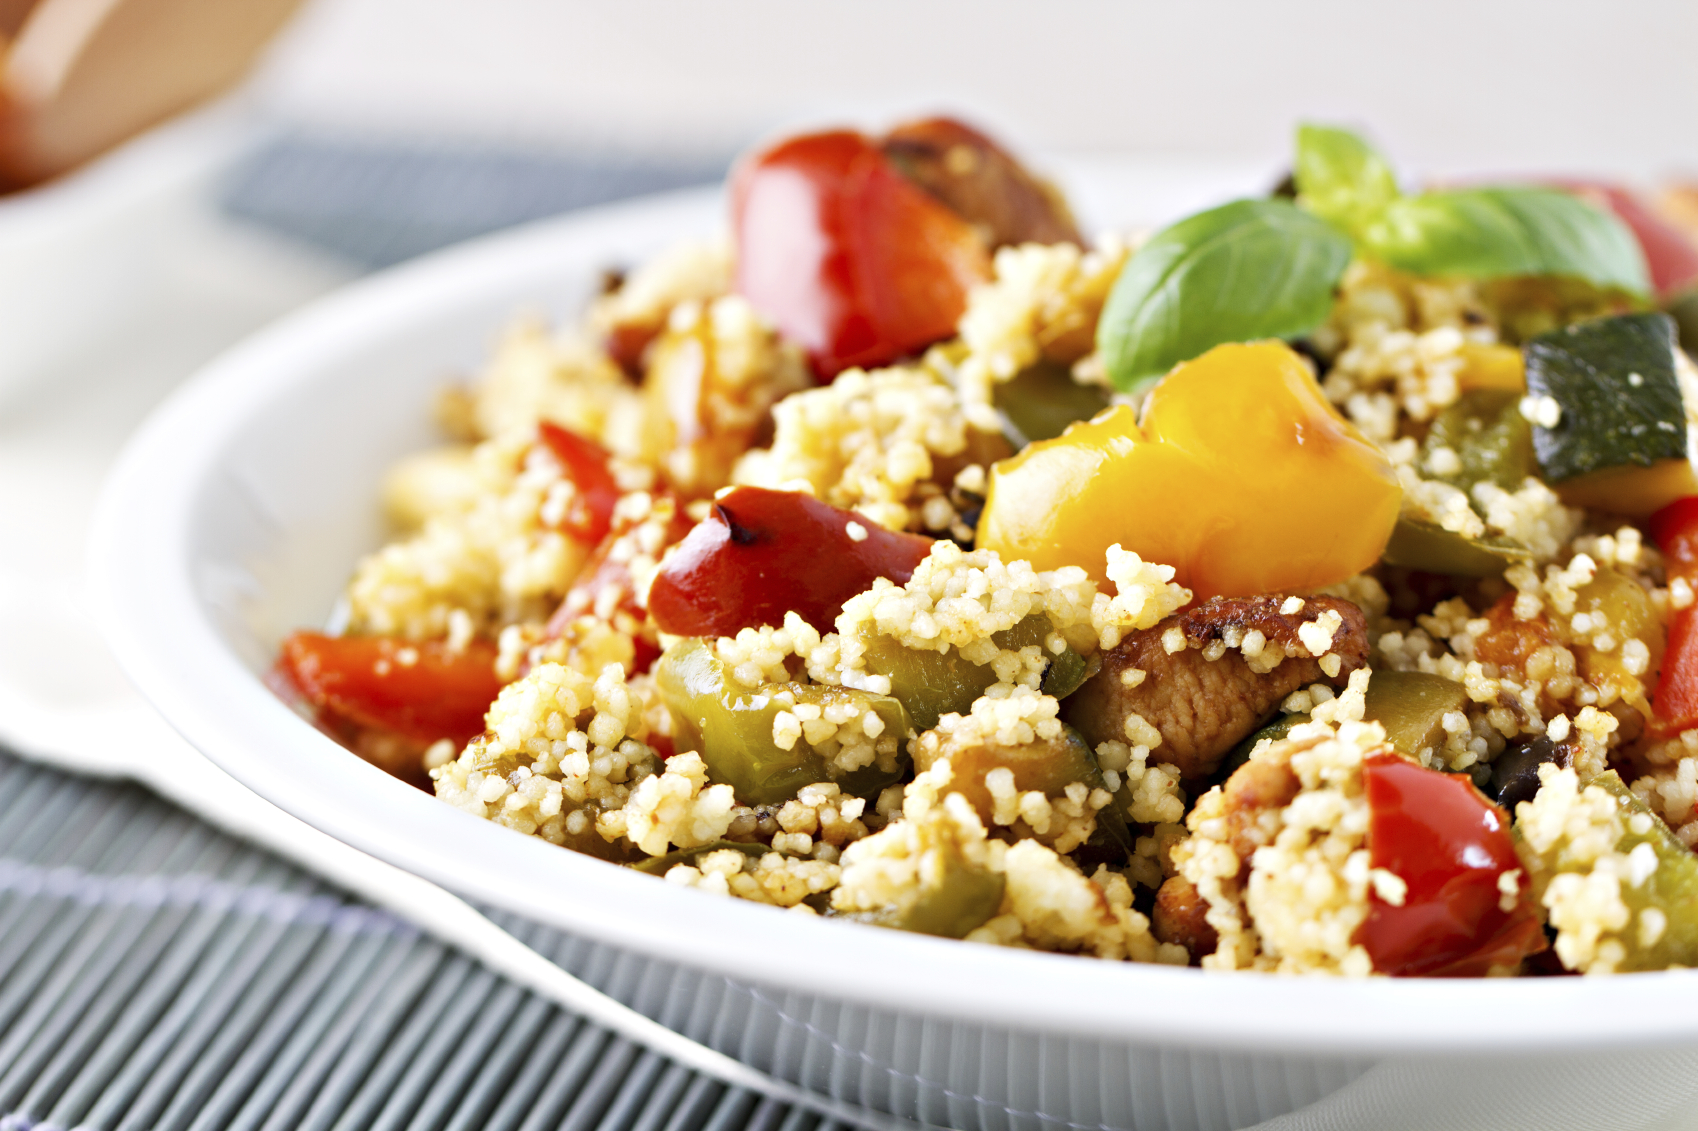 Warm Moroccan Spiced Couscous Salad